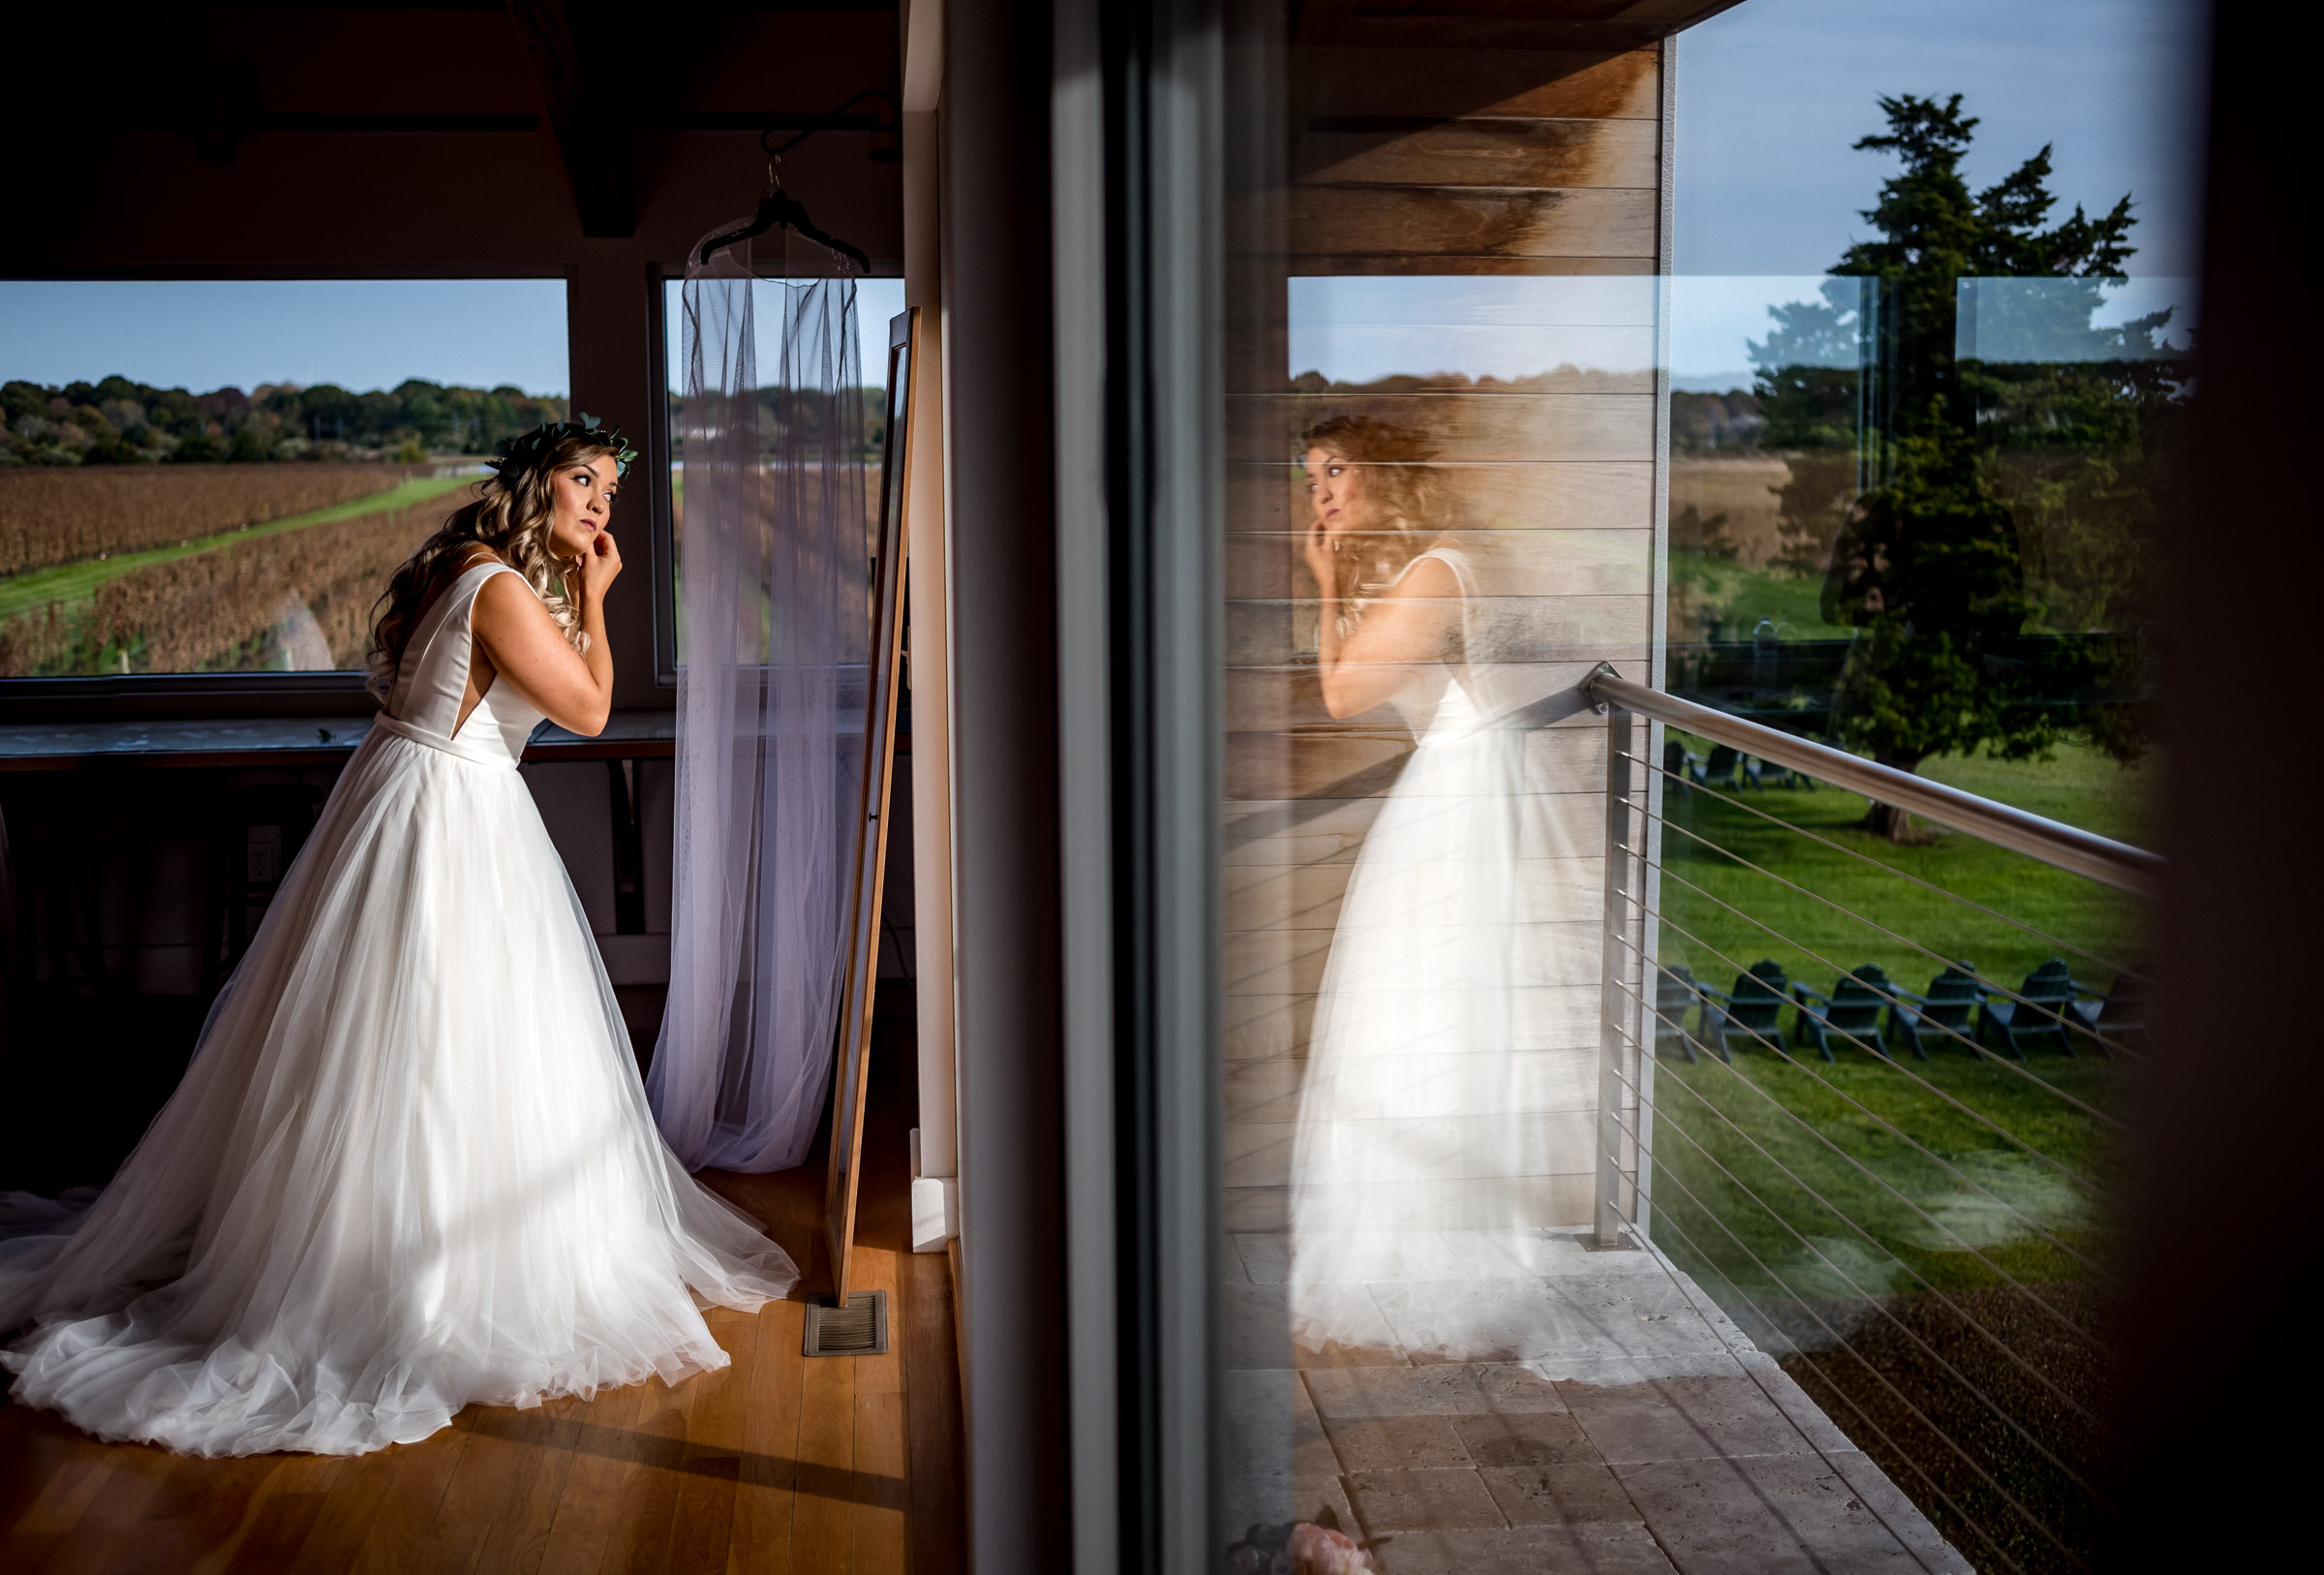 bride-getting-ready-reflected-in-window-randall-garnick-photography